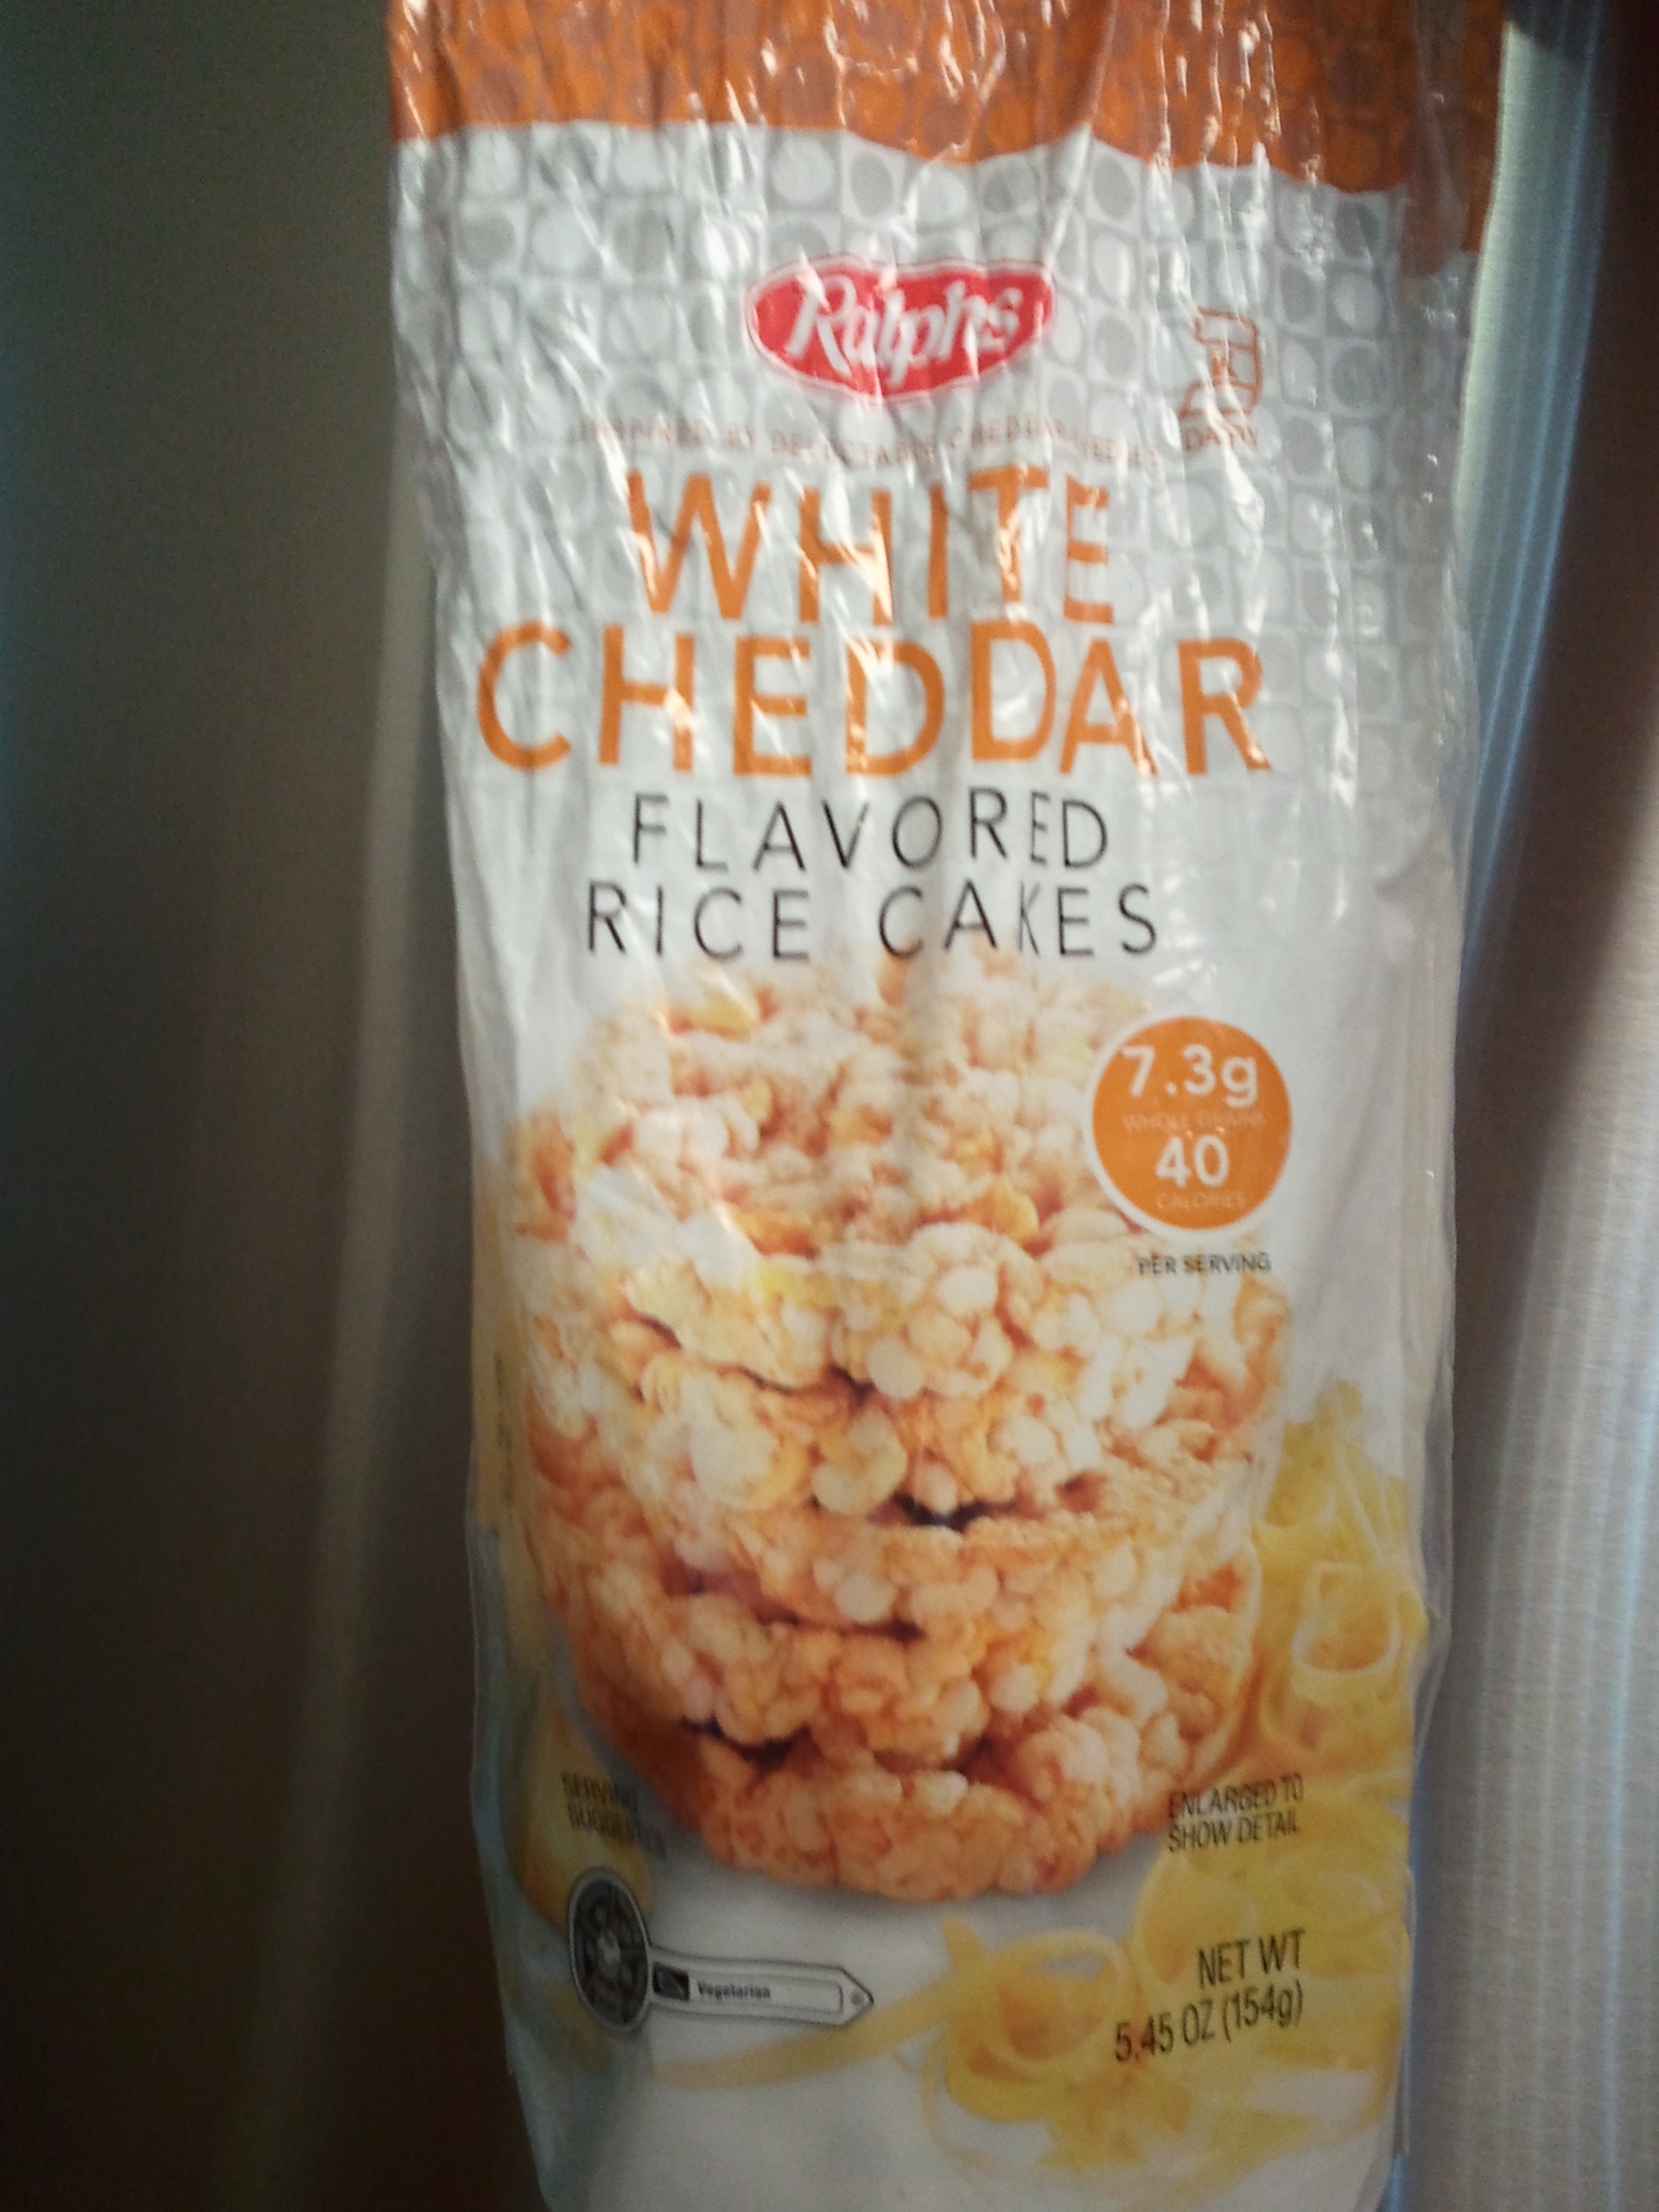 Ralph's White Cheddar Flavored Rice Cakes